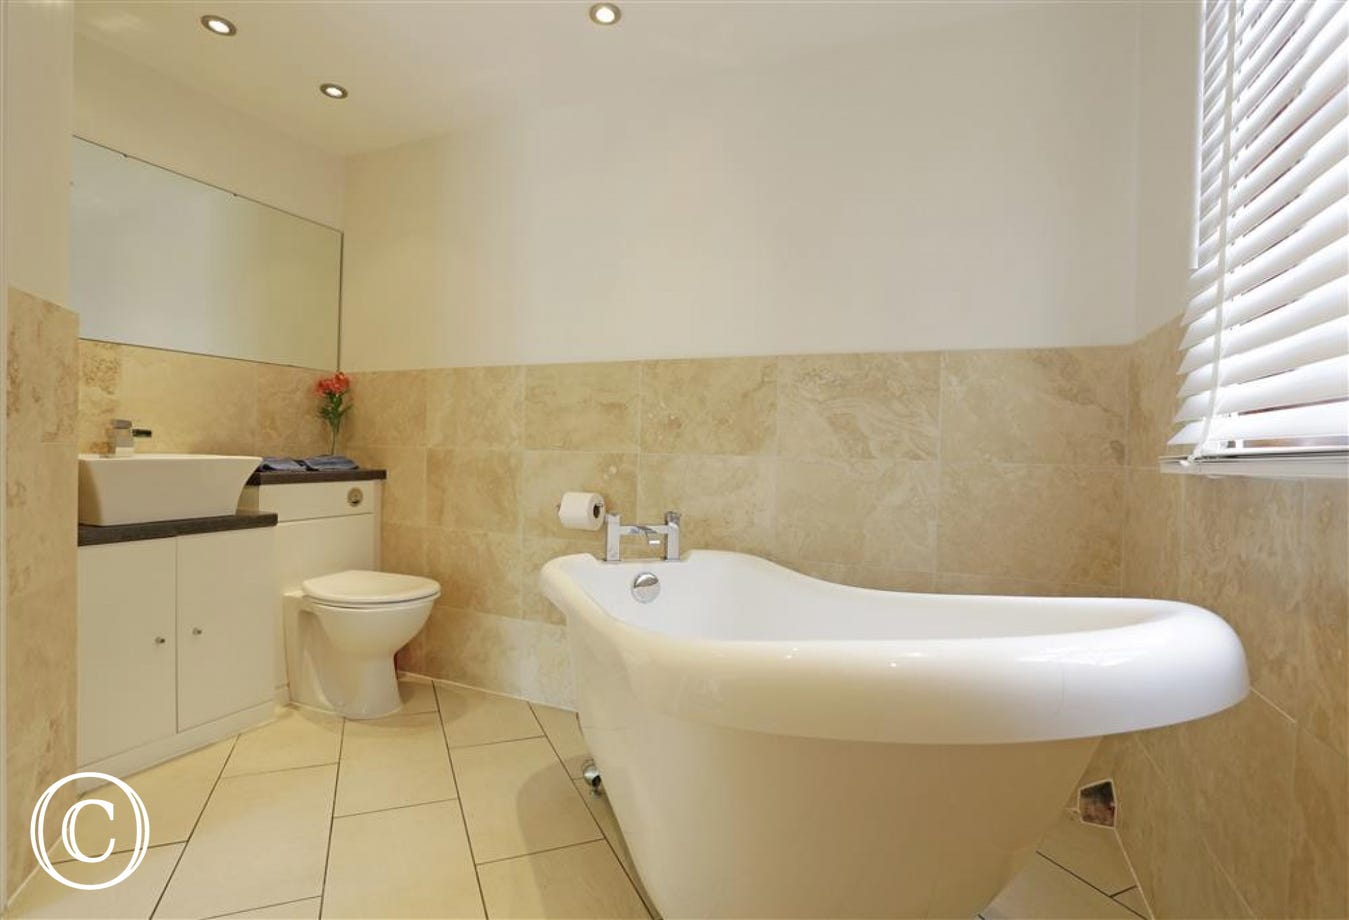 Bathroom - View 4